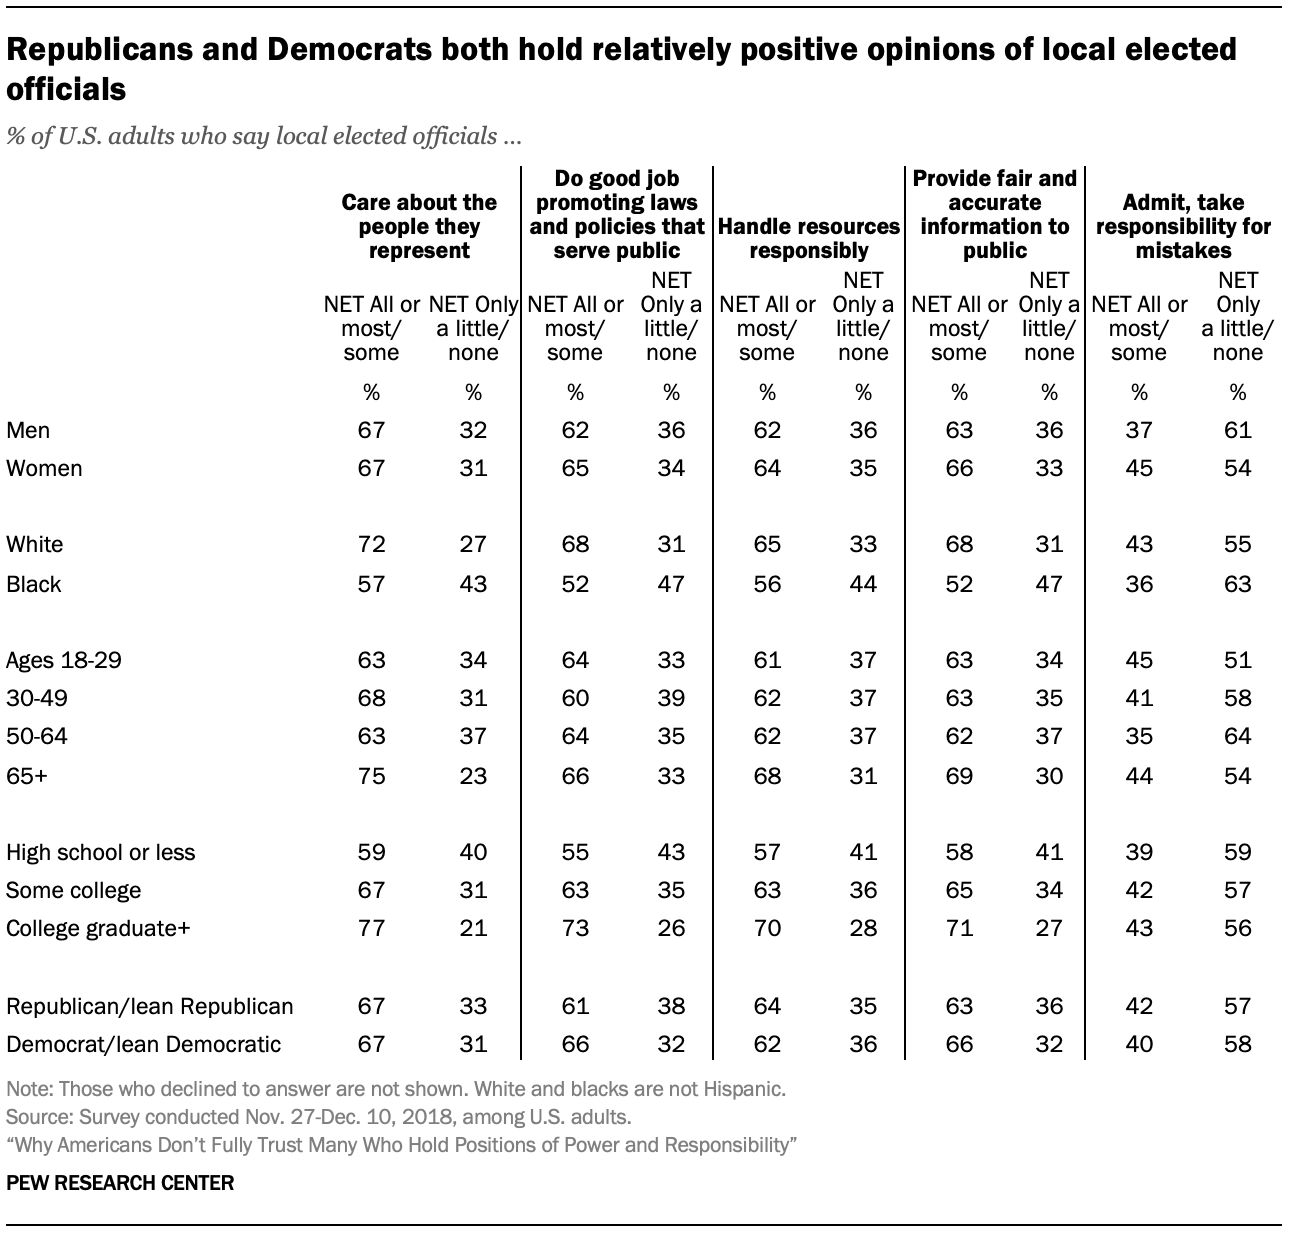 Republicans and Democrats both hold relatively positive opinions of local elected officials